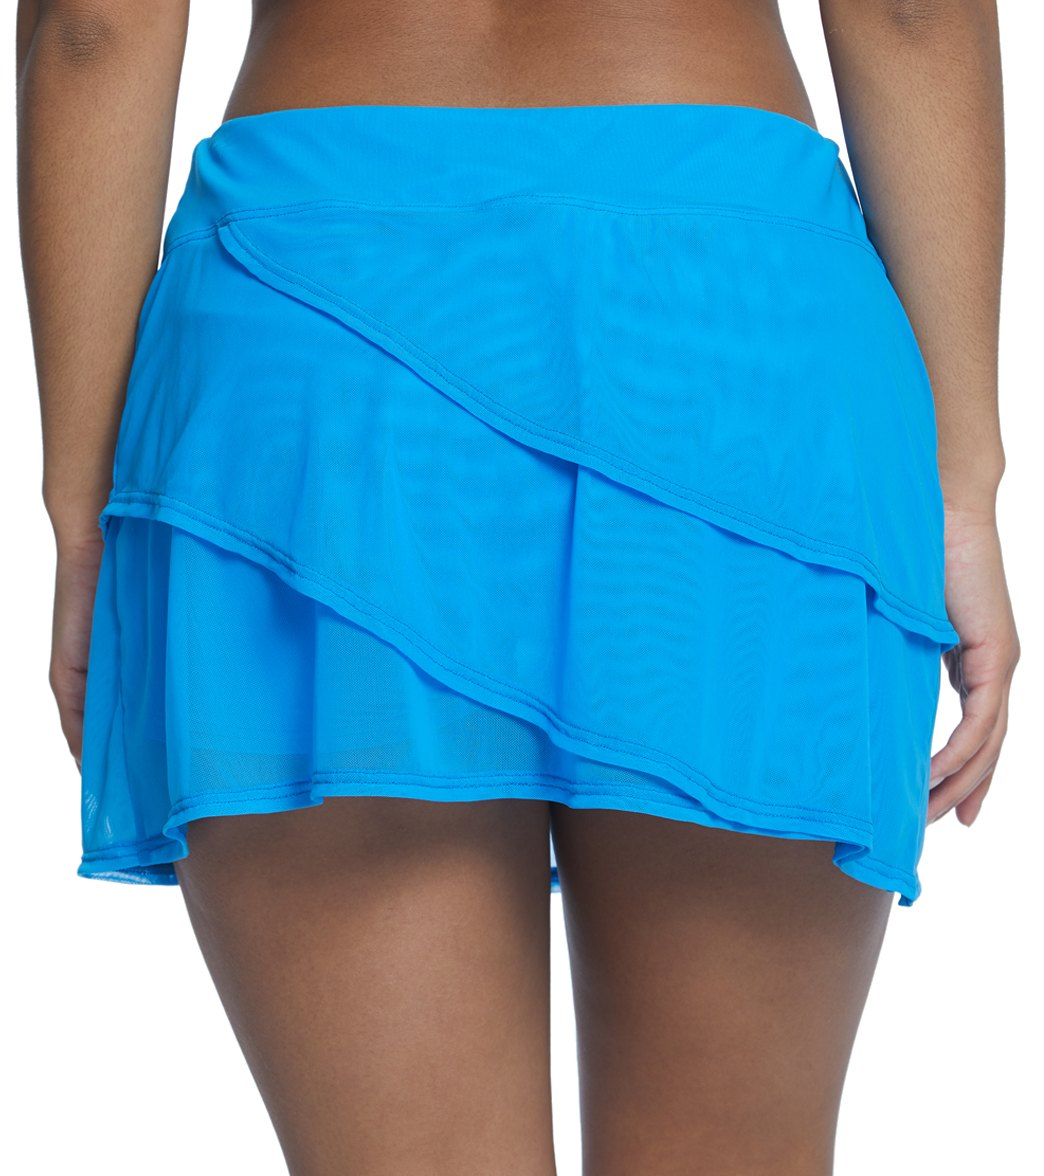 bfe6974be65 Coco Reef Classic Solid Mesh Layer Swim Skort at SwimOutlet.com ...